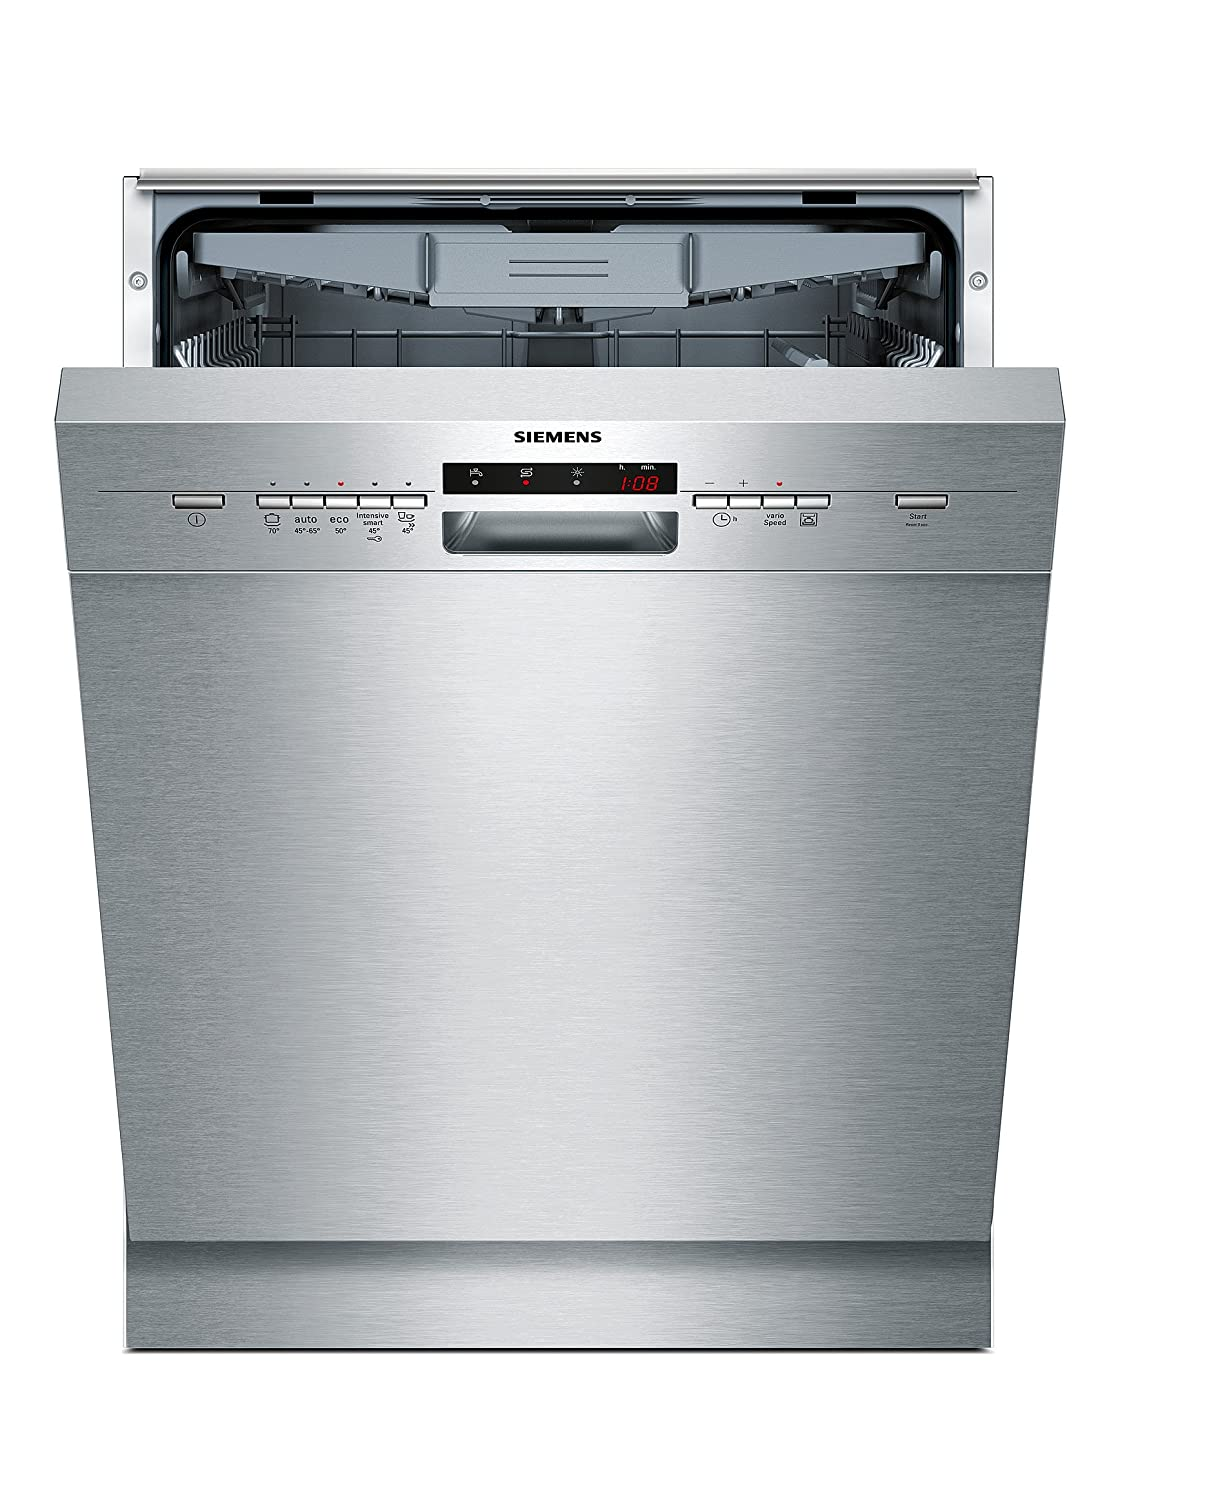 Siemens SN45L580EU lavastoviglie: Amazon.it: Casa e cucina